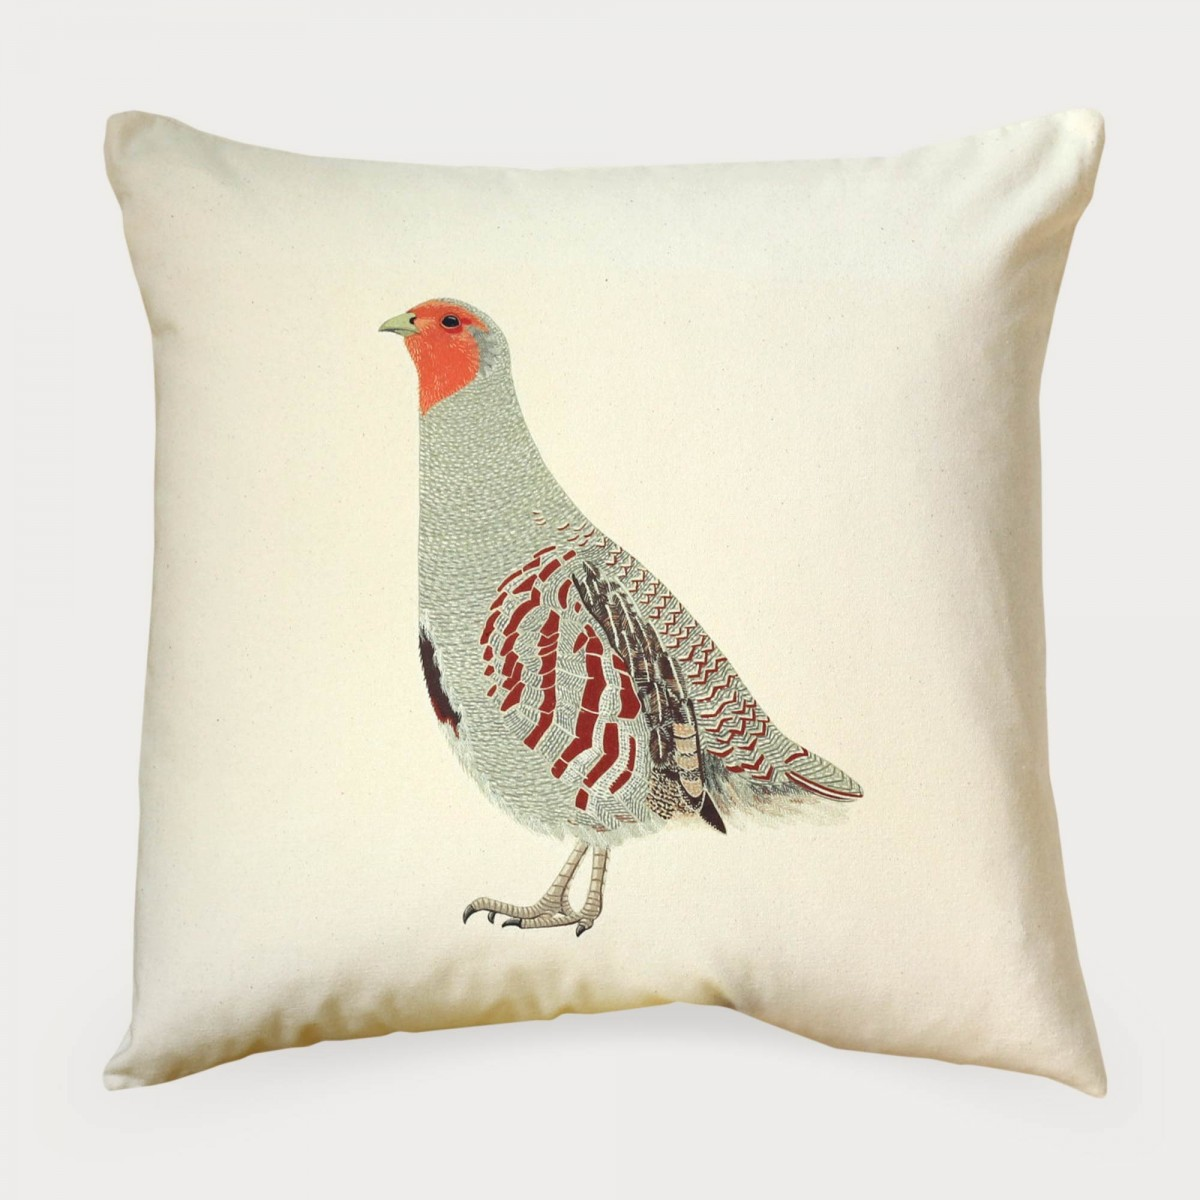 English Partridge Natural Cotton Canvas Square Cushion Cover